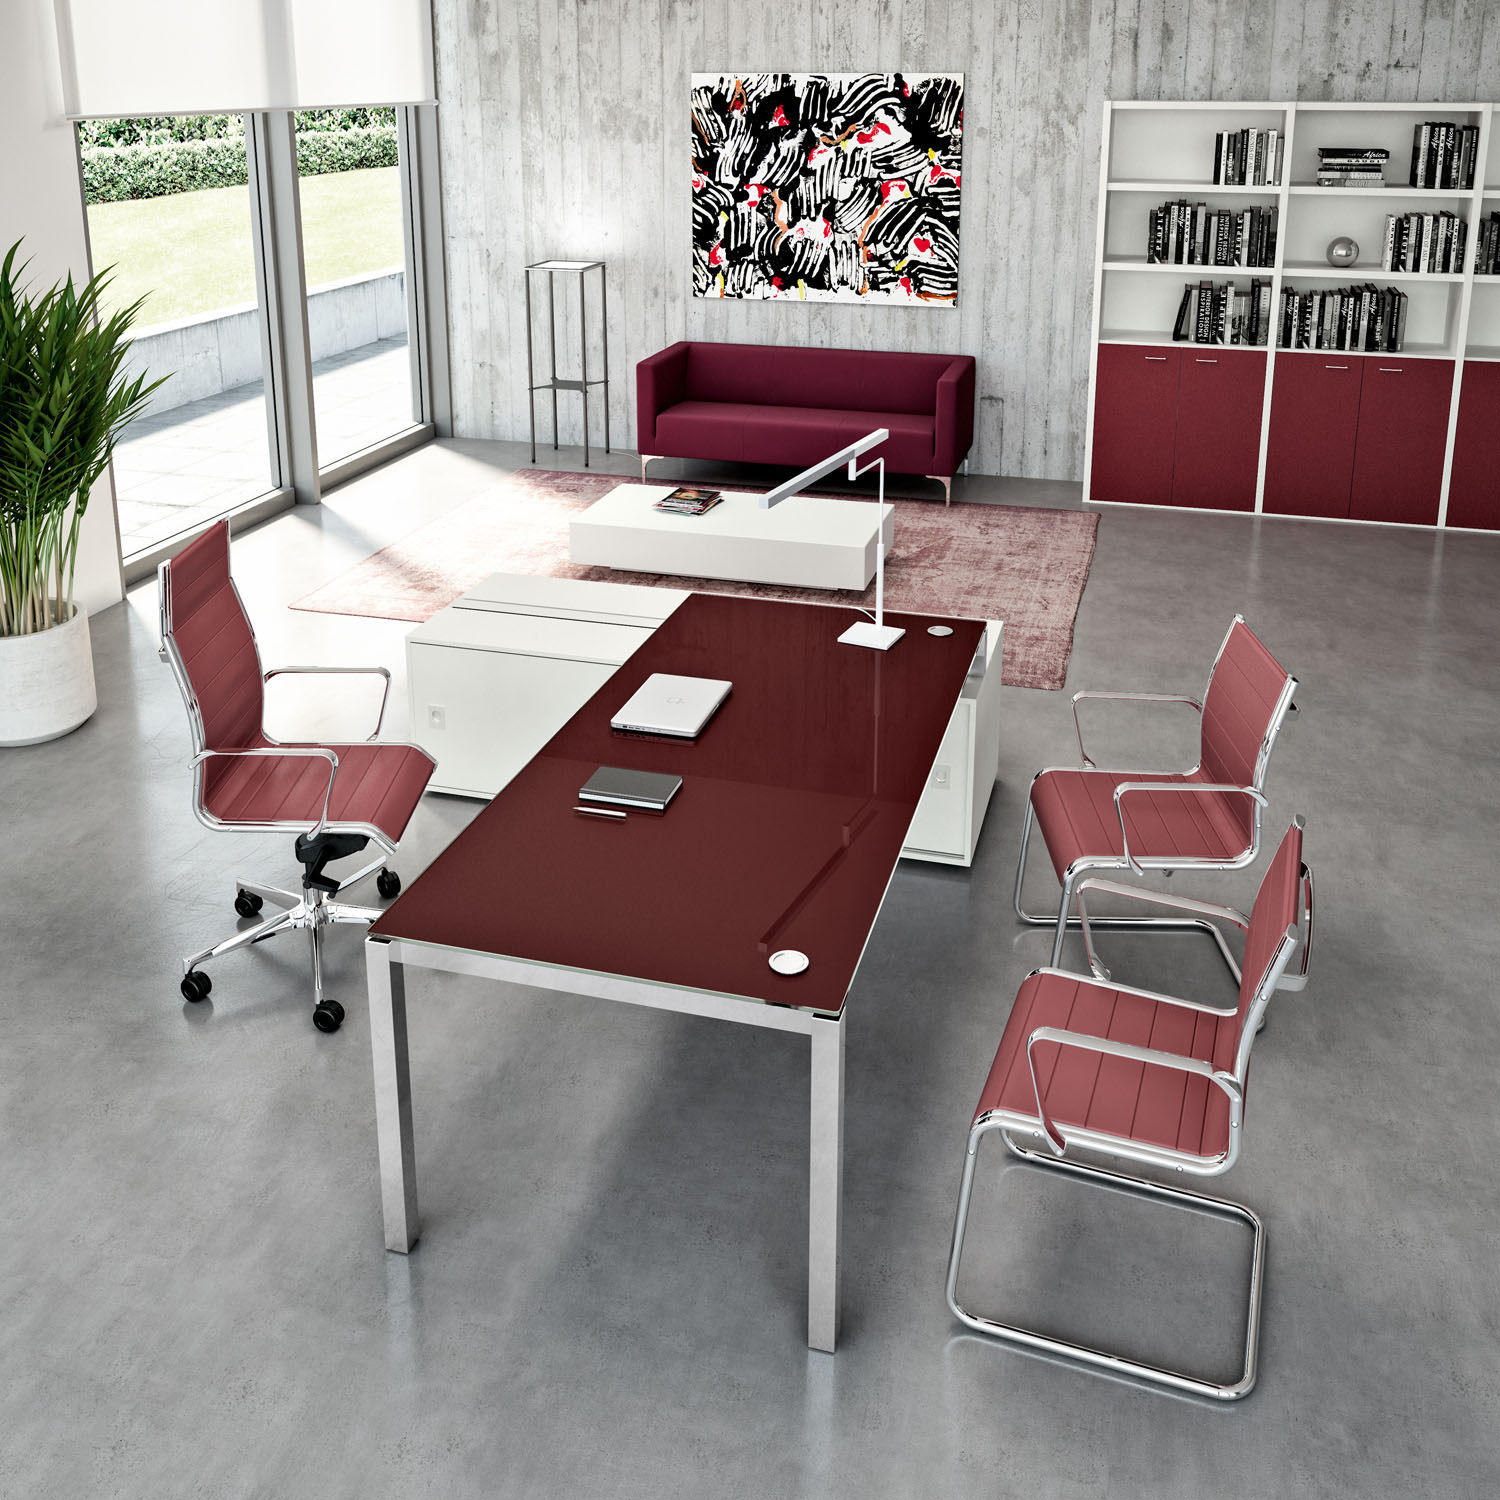 What Office Design Does The Nomadic Worker Inspire Modern Office